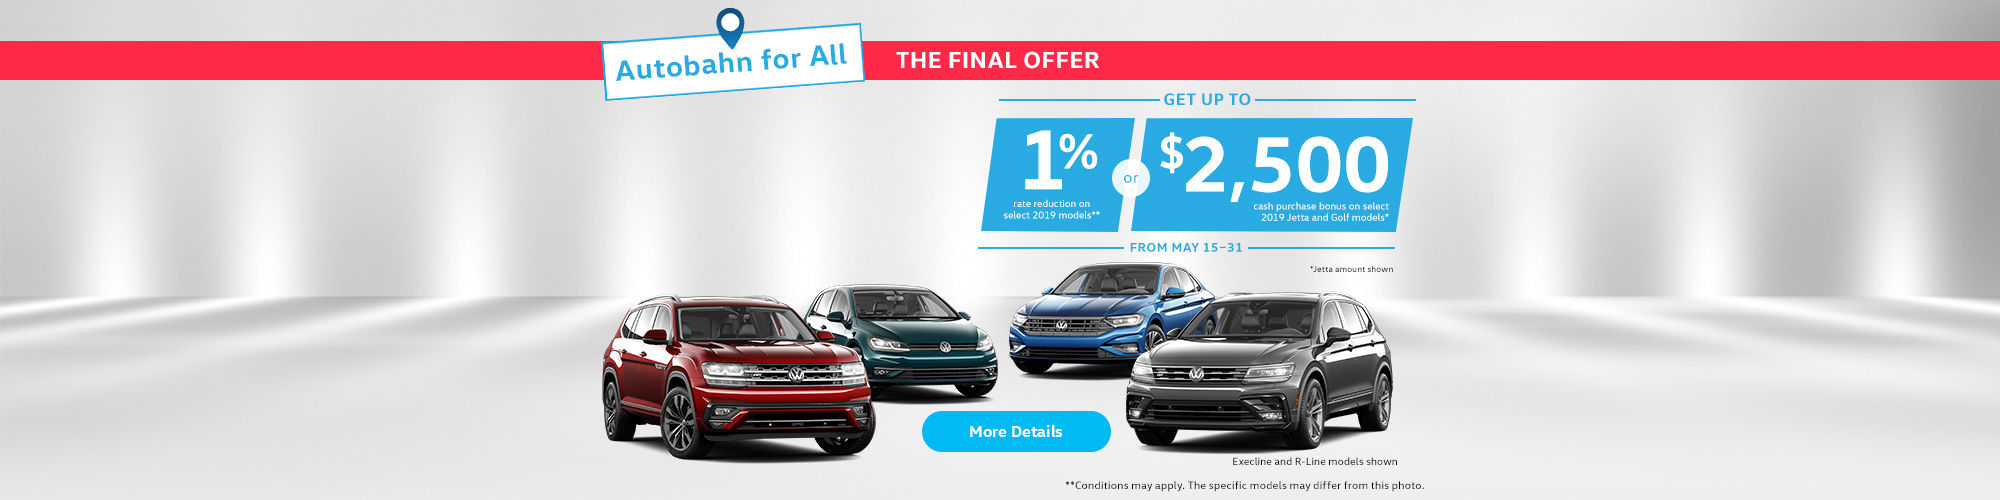 The Volkswagen Final Offer